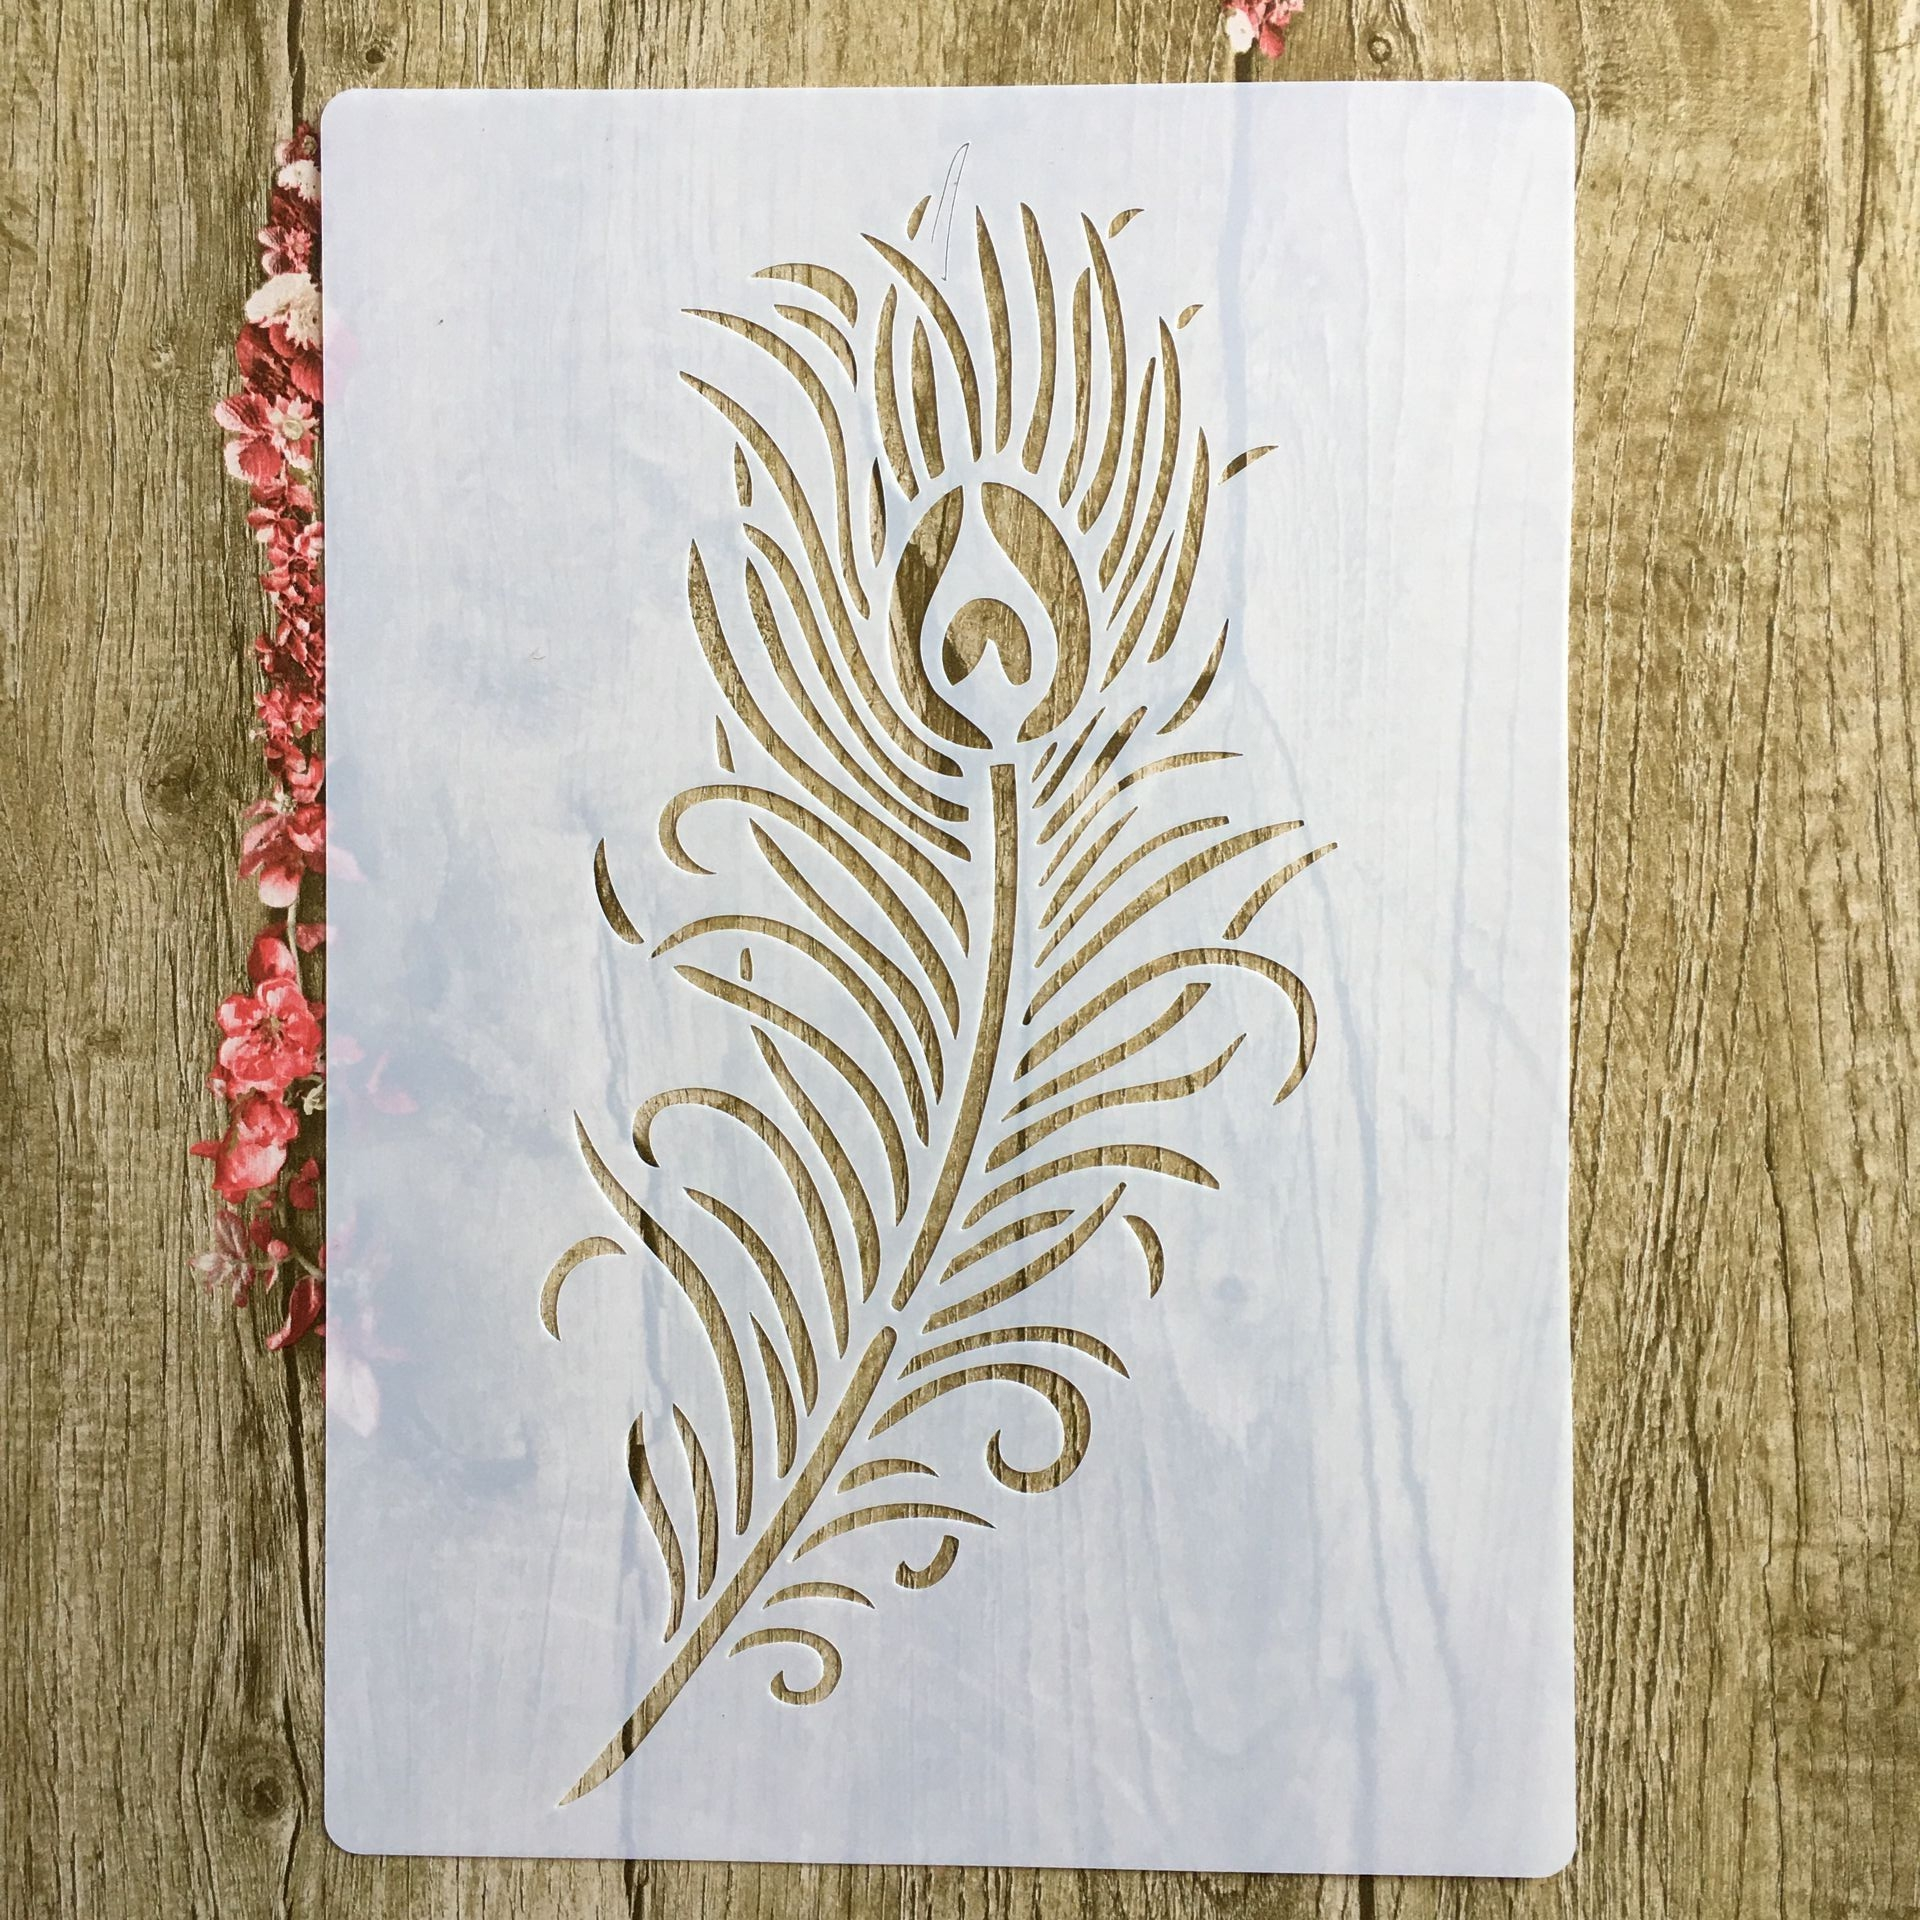 29 * 21cm Large Feather DIY Stencils Wall Painting Scrapbook Coloring Embossing Album Decorative Paper Card Template